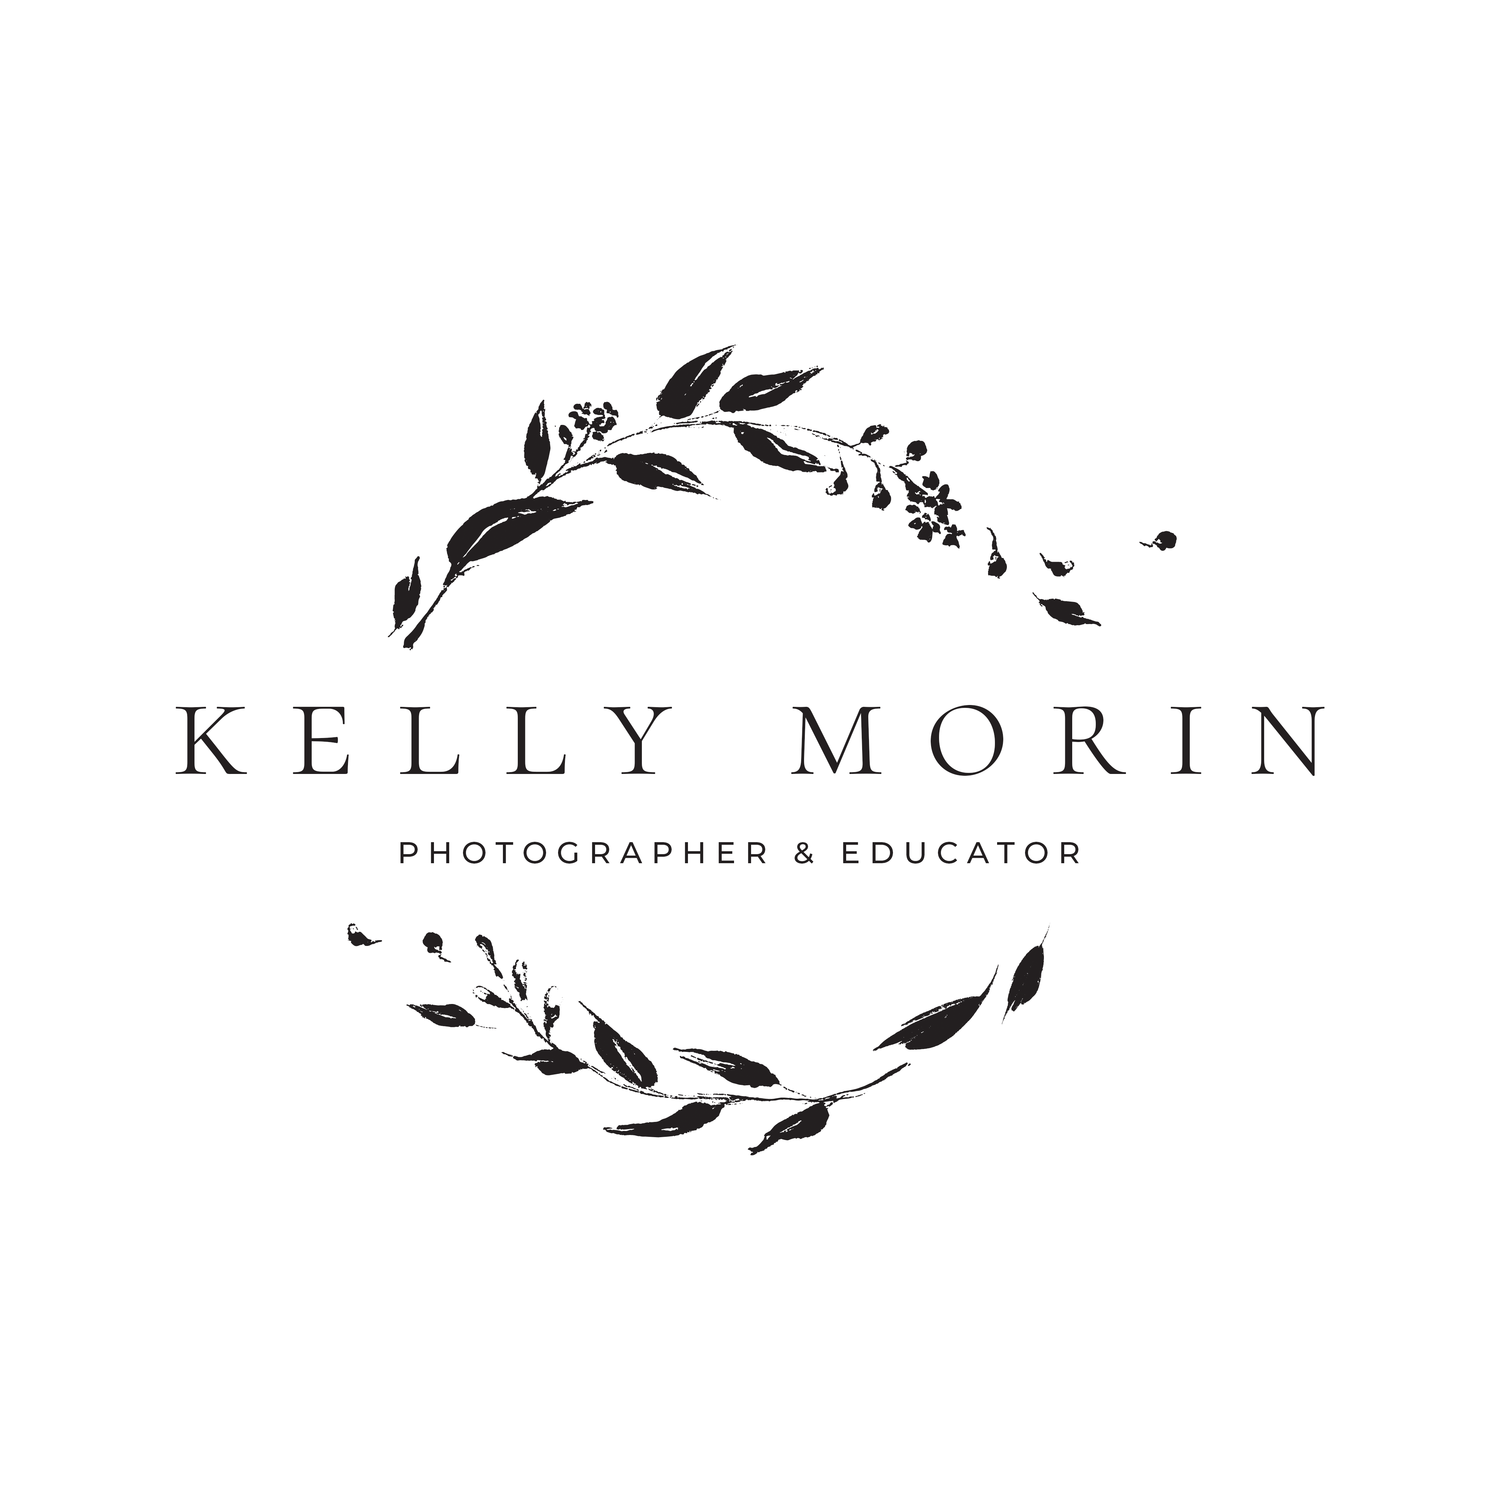 Kelly Morin